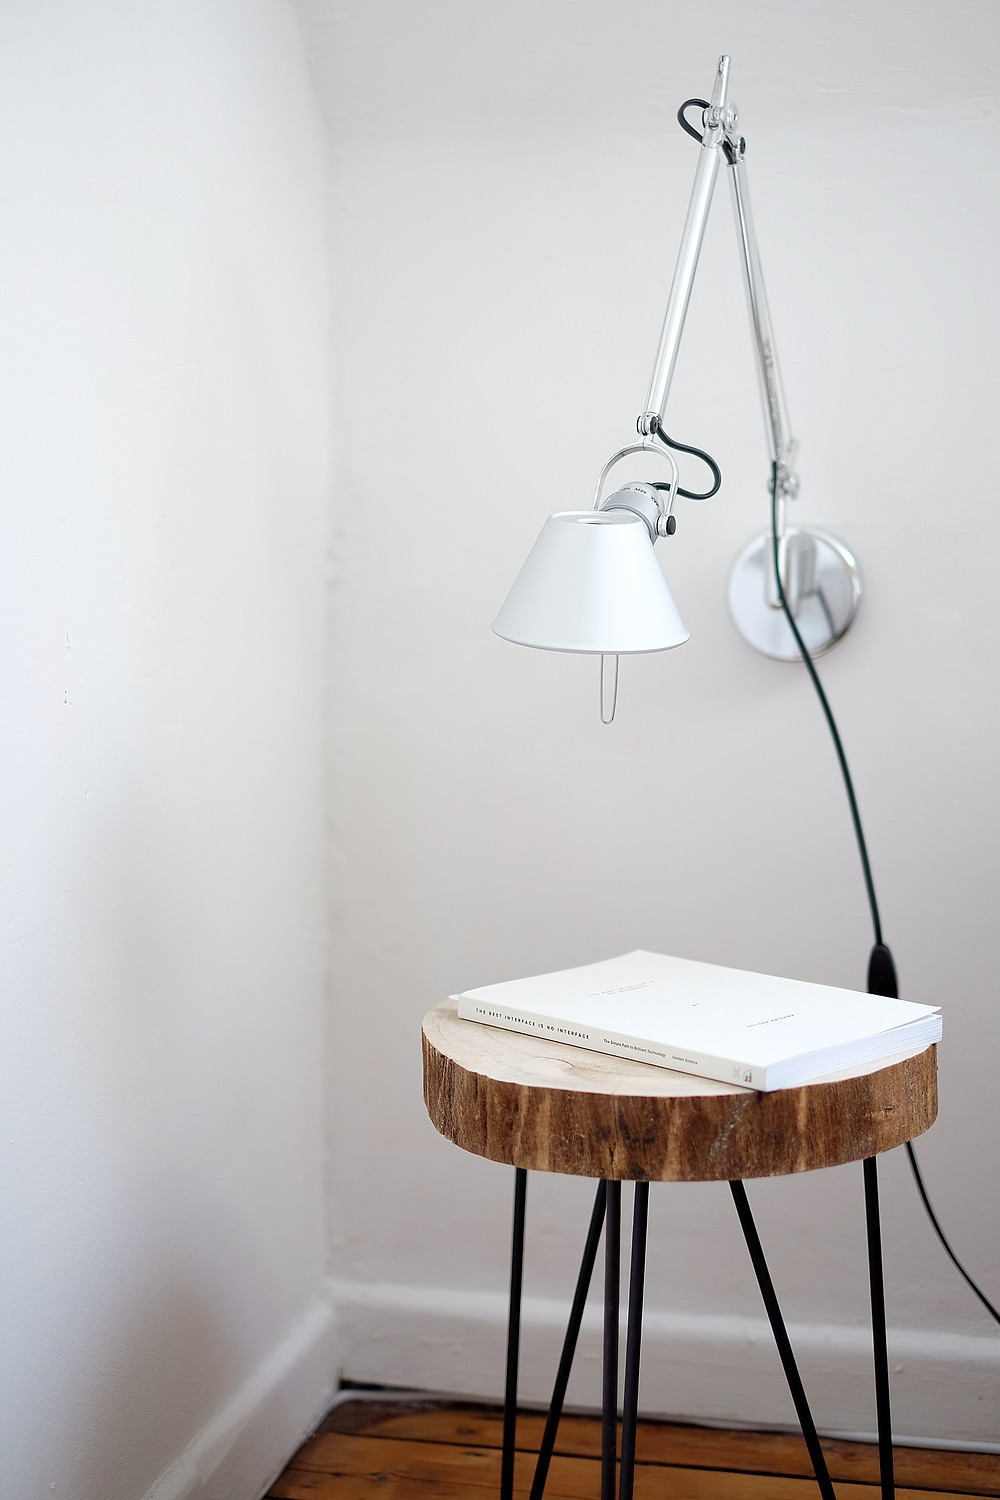 Simple modern rustic wood log side table with a white book placed on top and a clean wall reading lamp. White space suggests minimal modern design.